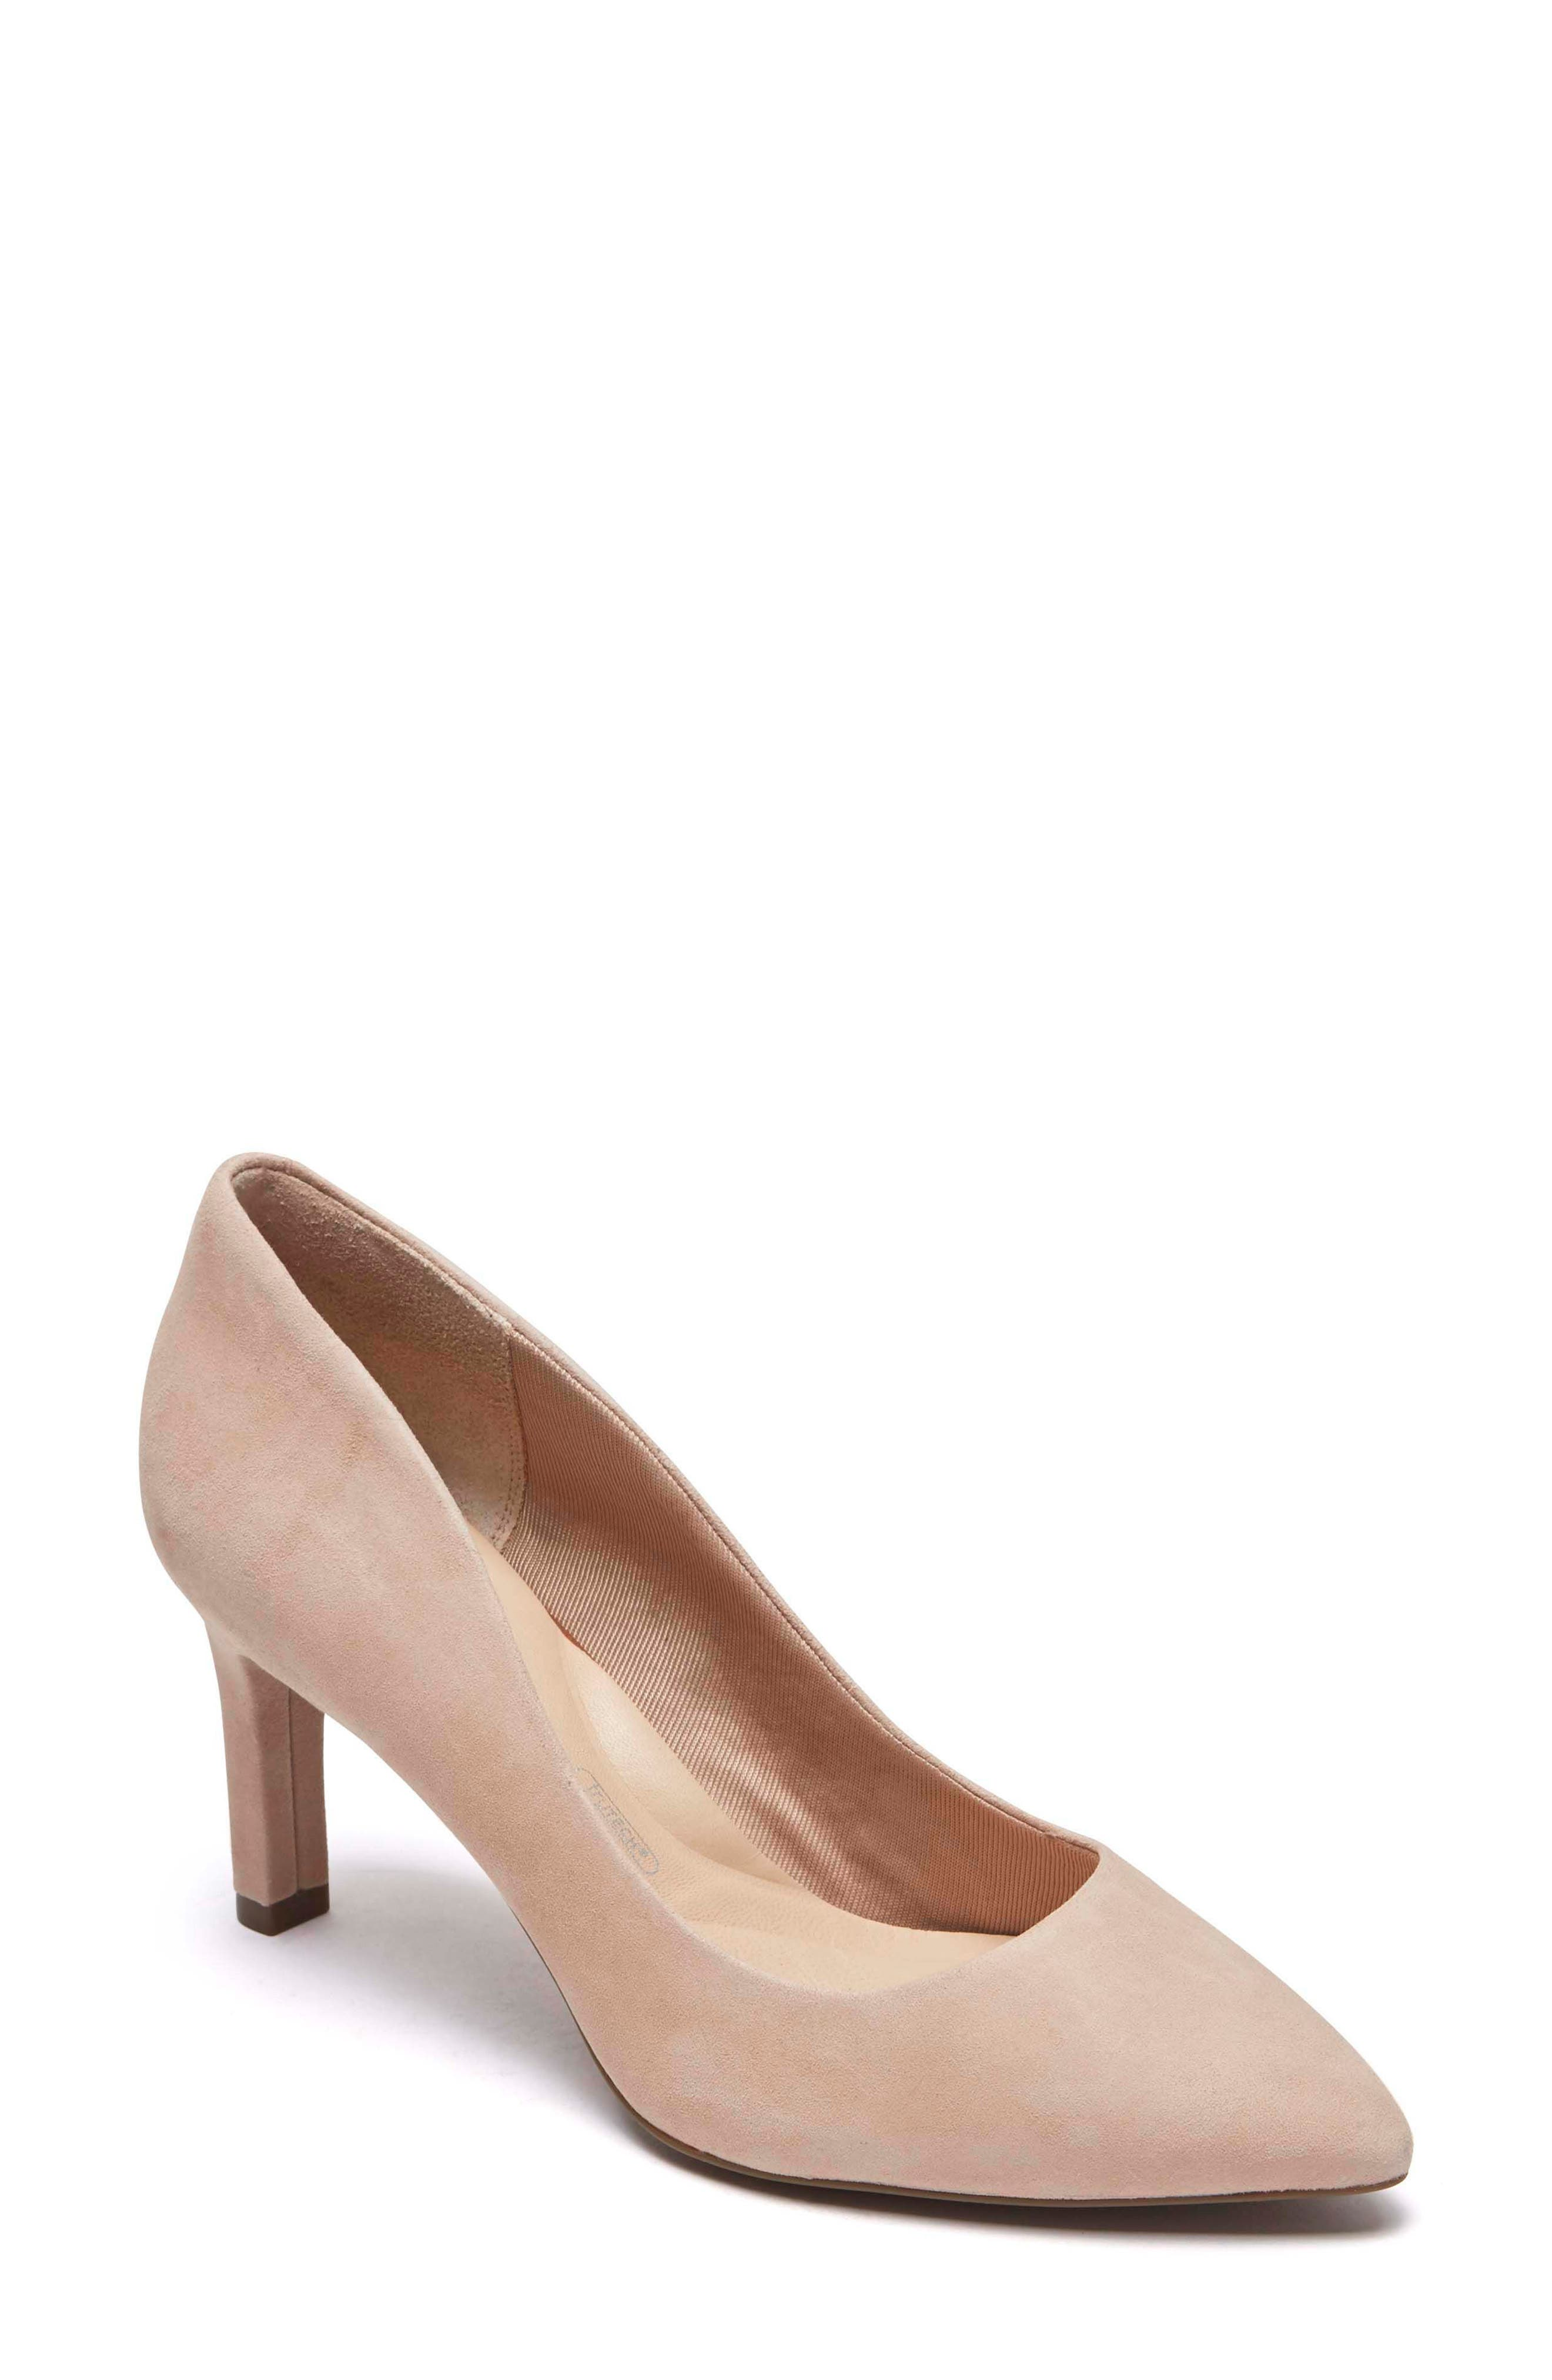 ROCKPORT, Total Motion Luxe Valerie Pump, Main thumbnail 1, color, BLUSH SUEDE